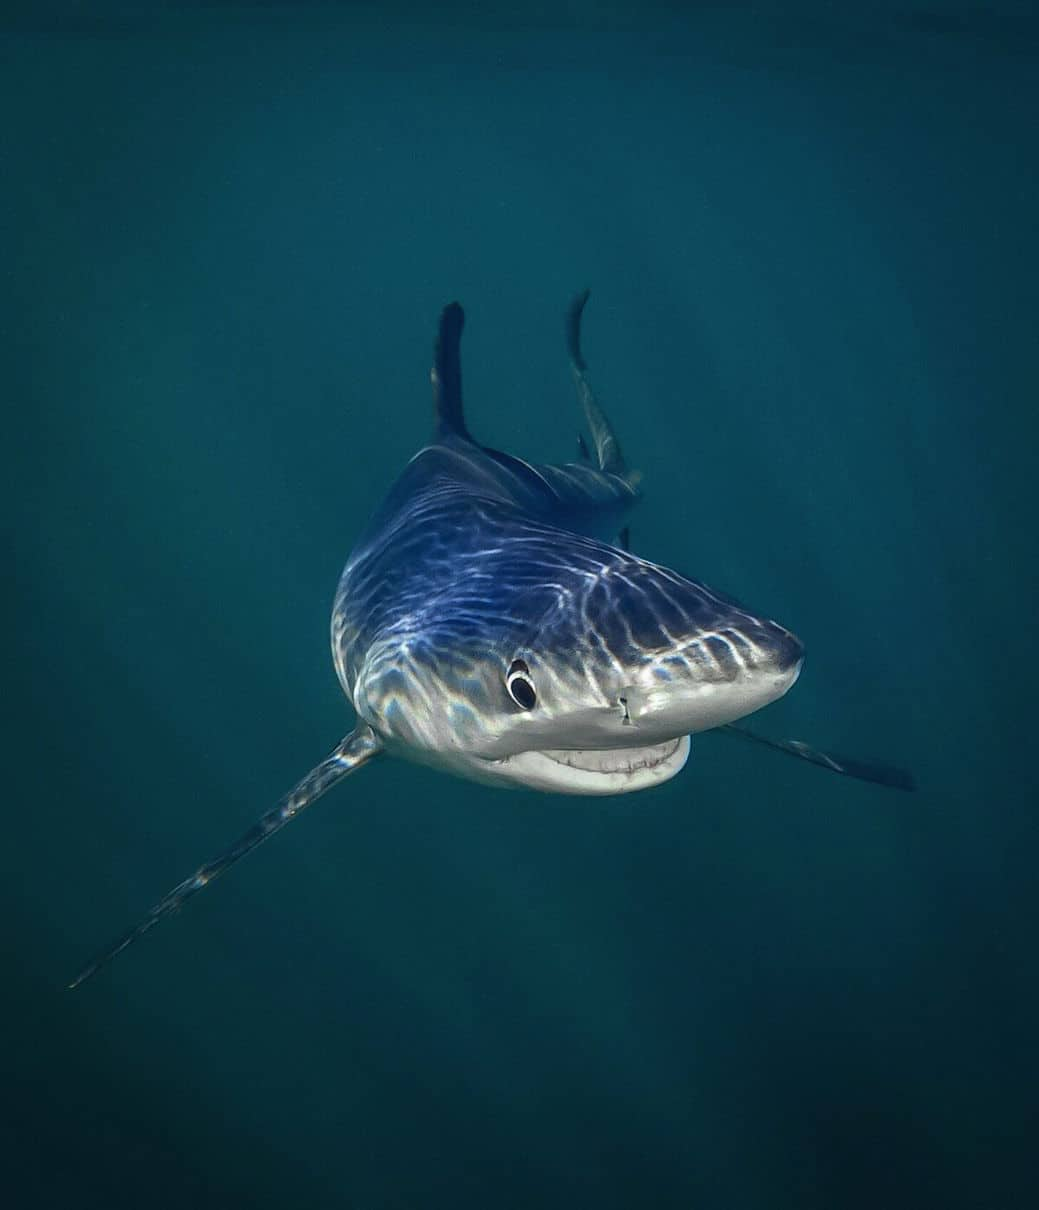 """Smiling Blue Shark"" autor Tanya Houppermans"